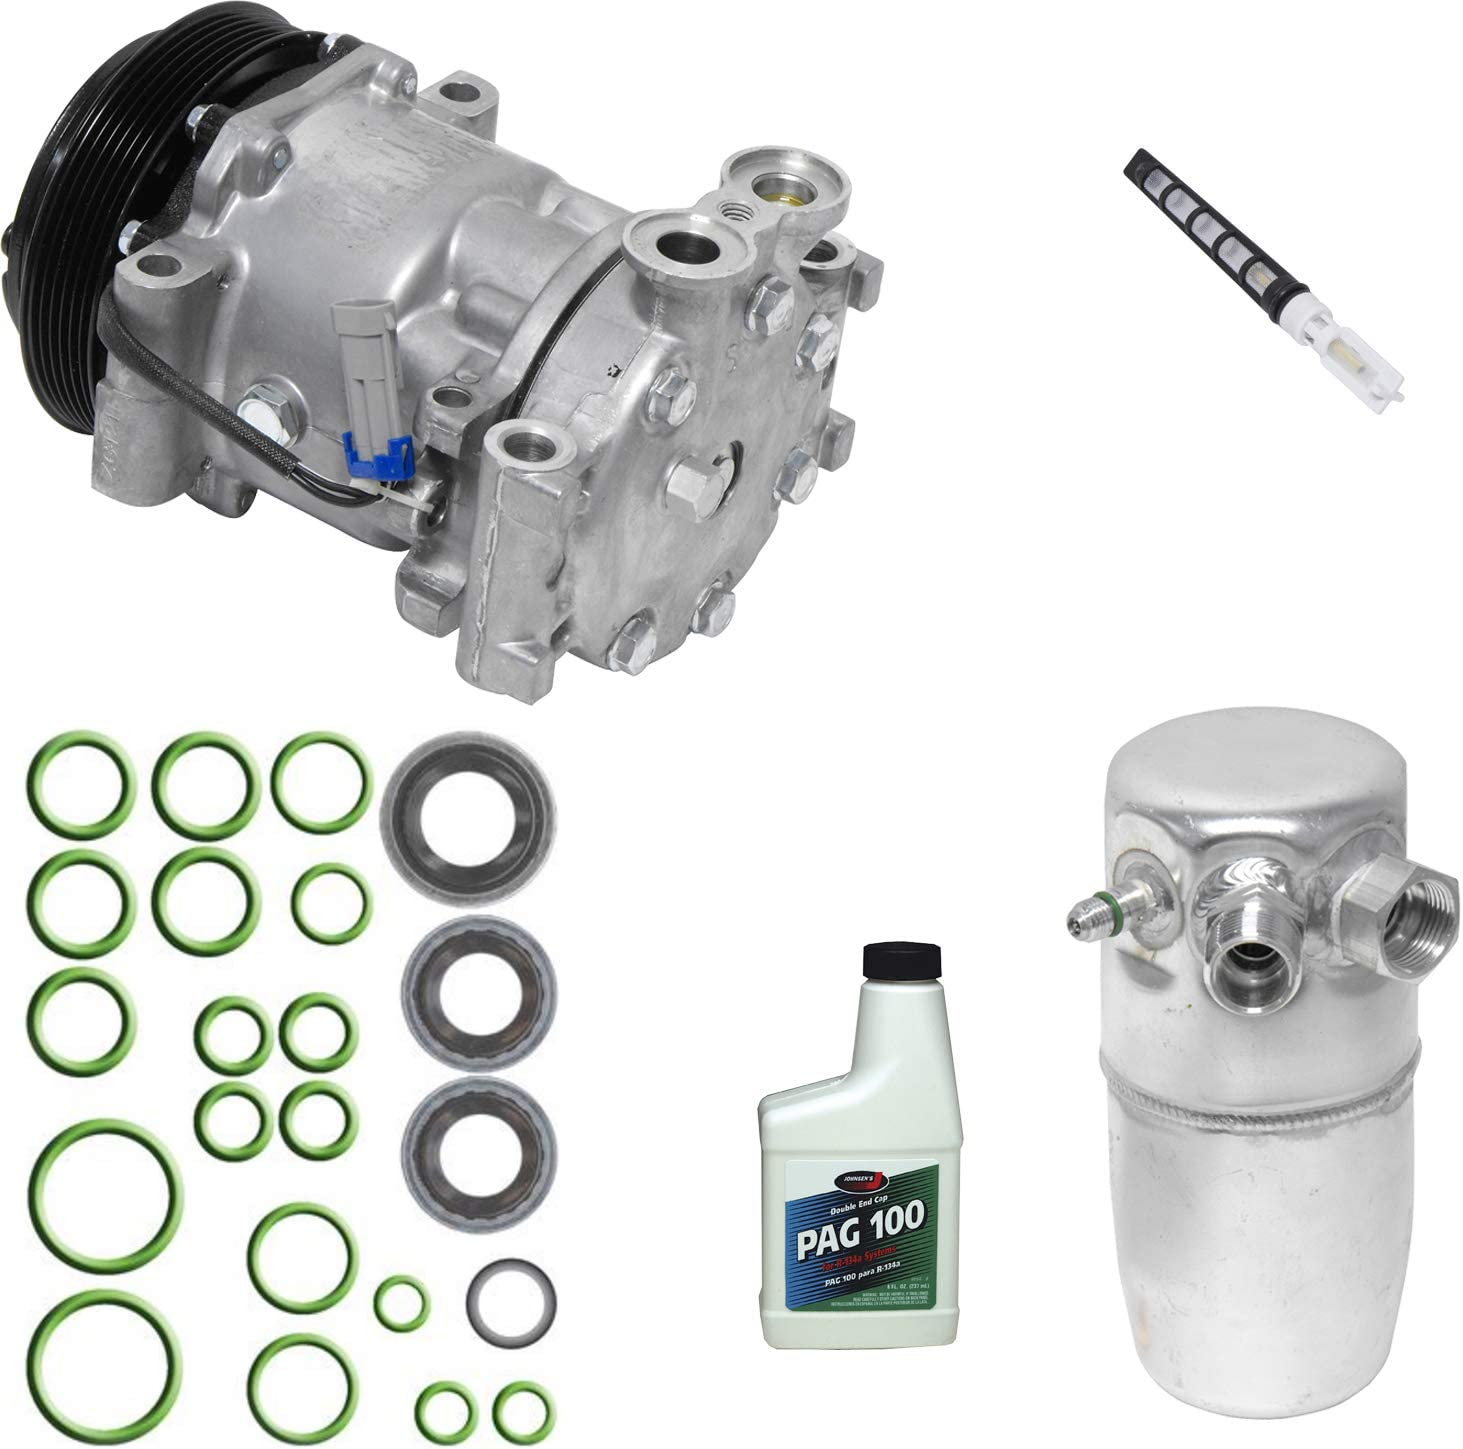 New A//C Compressor and Component Kit 1051438-15728631 K1500 C1500 K1500 C1500